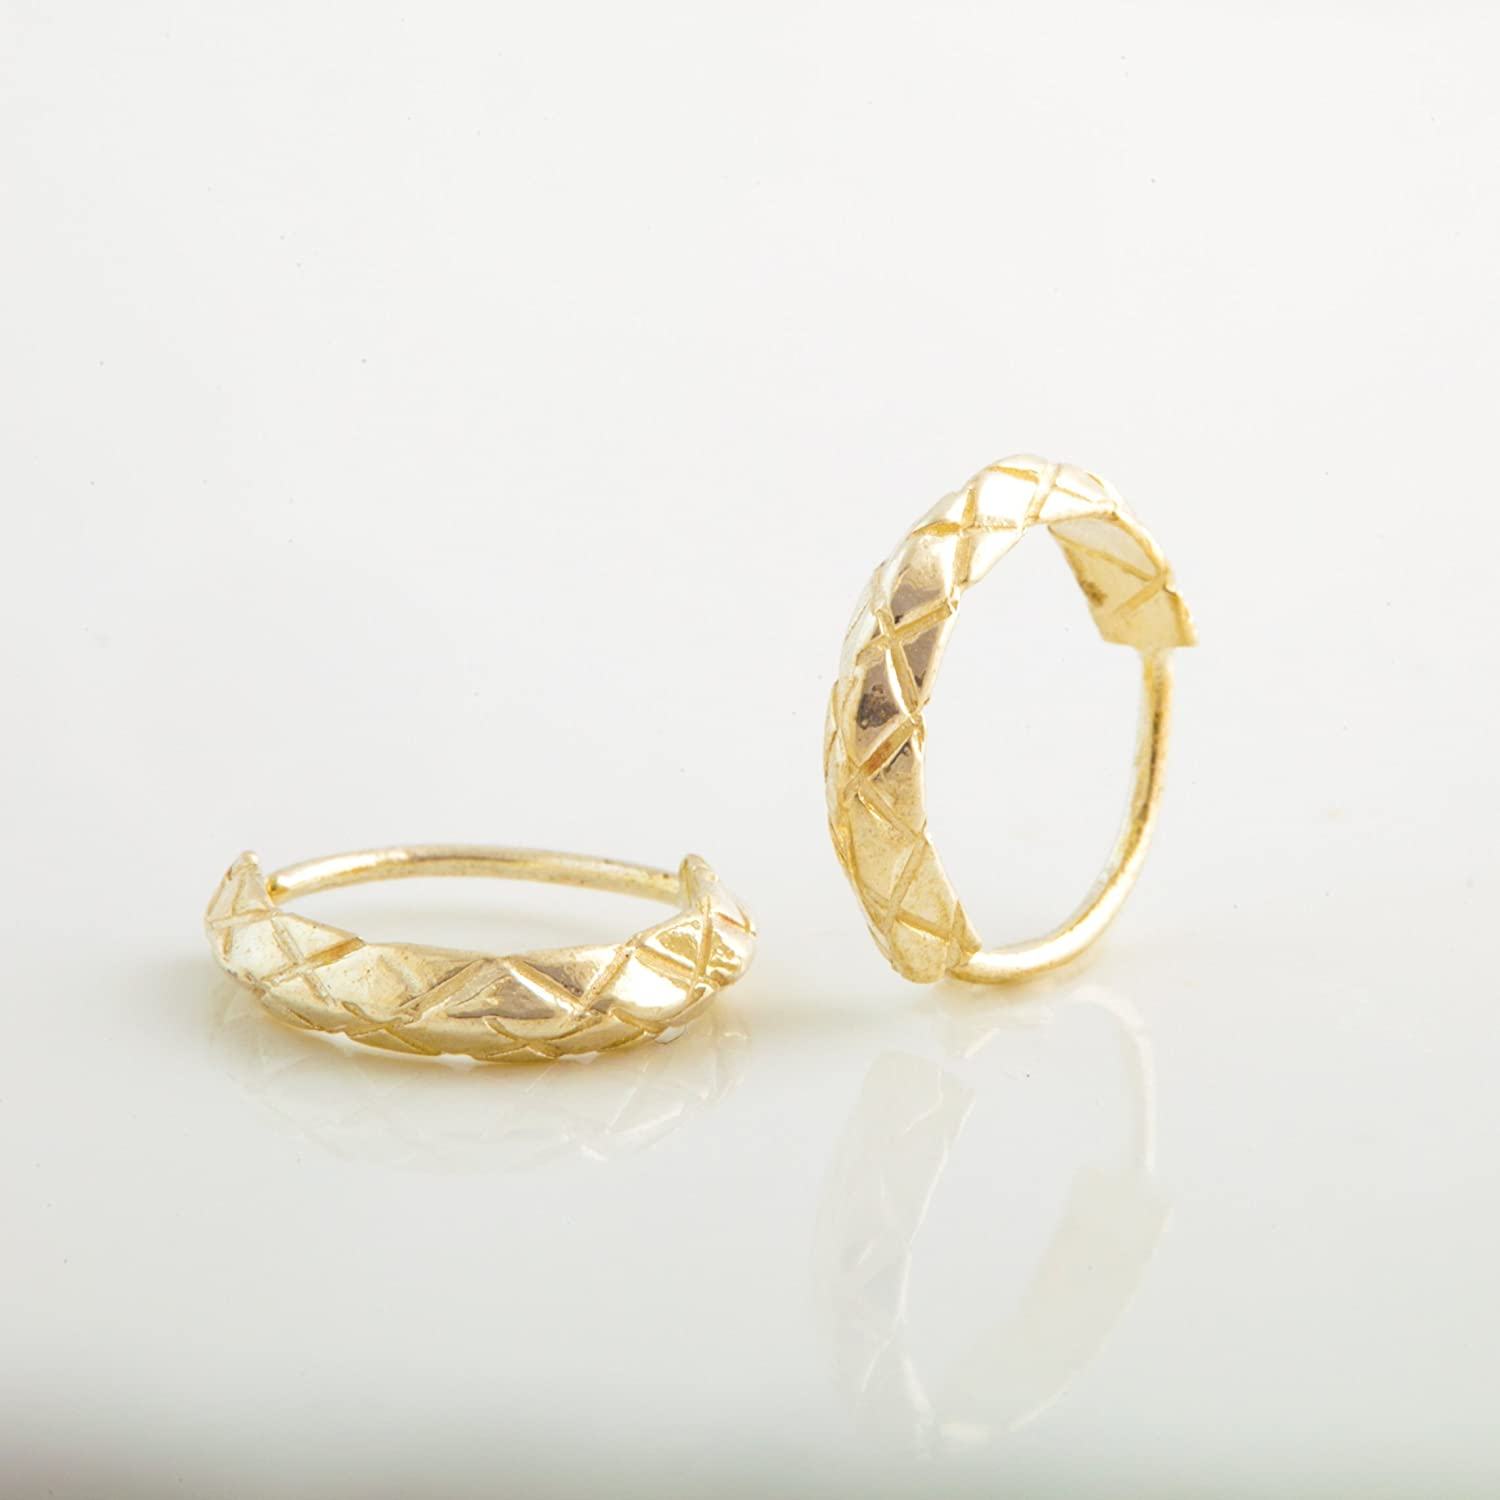 Amazon Com Small Hoop Earrings 14k Yellow Or Rose Gold Indian Style Tiny Hoop Set Fits Helix Cartilage Tragus Ear Piercing Handmade Unique Jewelry Handmade